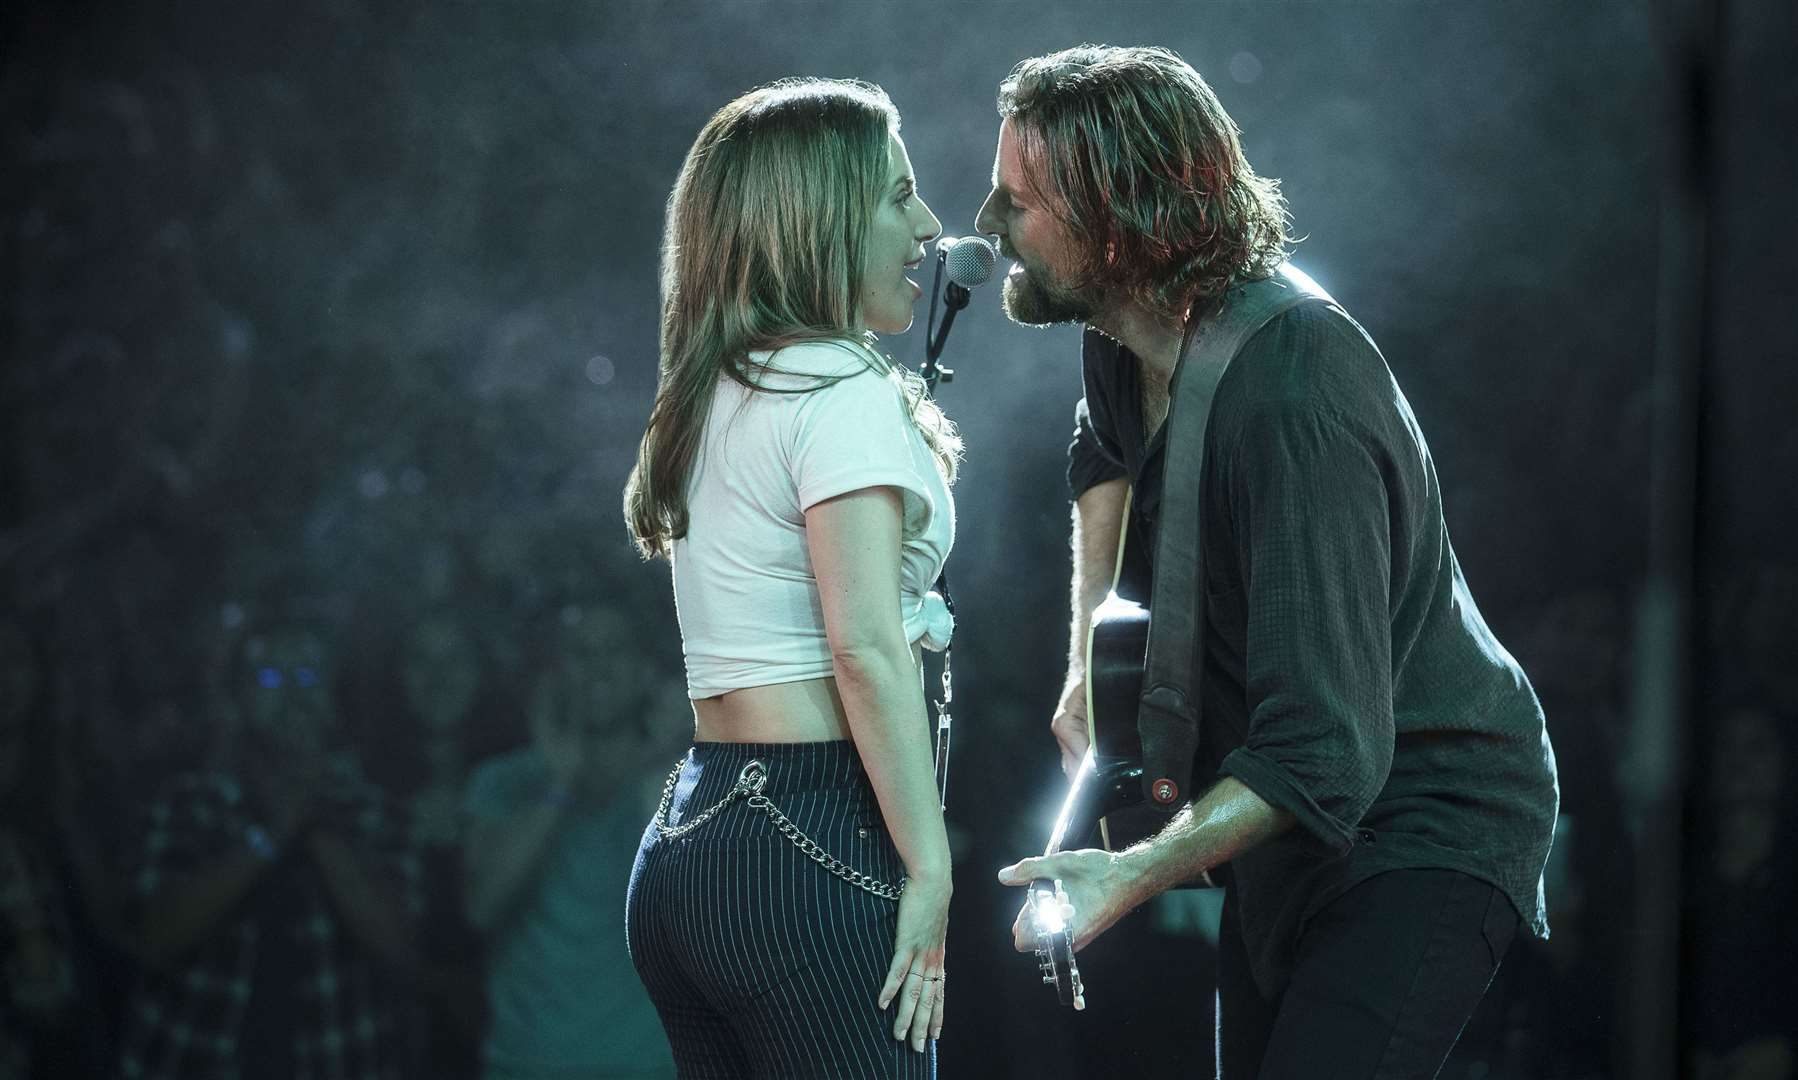 Lukas Nelson & Promise of the Real, who recently collaborated with Lady Gaga and Bradley Cooper for the multi-award winning A Star is Born soundtrack for their blockbusting film will be at the festival Picture: Warner Bros. Entertainment Inc./Clay Enos